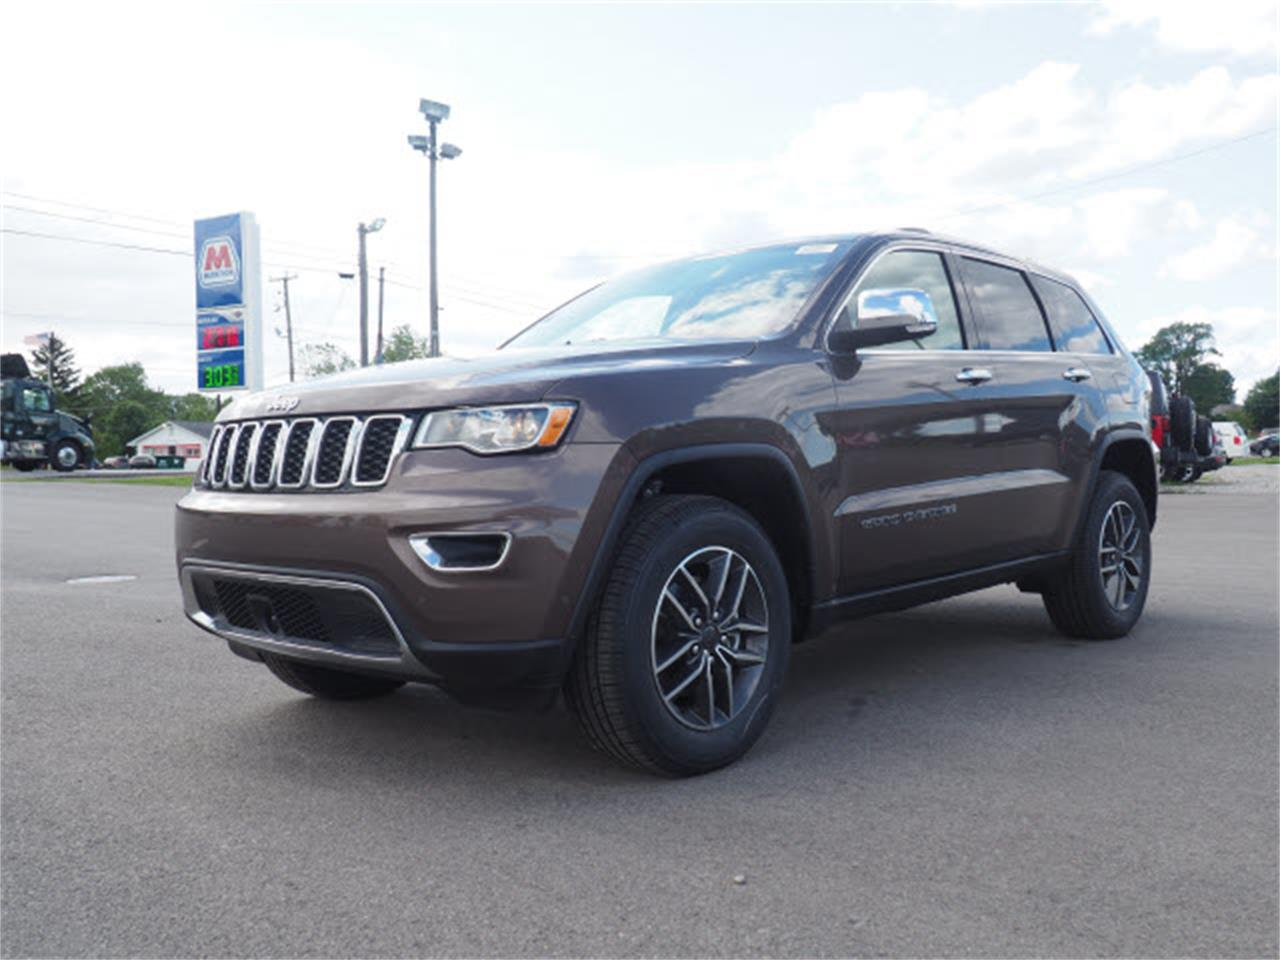 2020 Jeep Grand Cherokee (CC-1327538) for sale in Marysville, Ohio